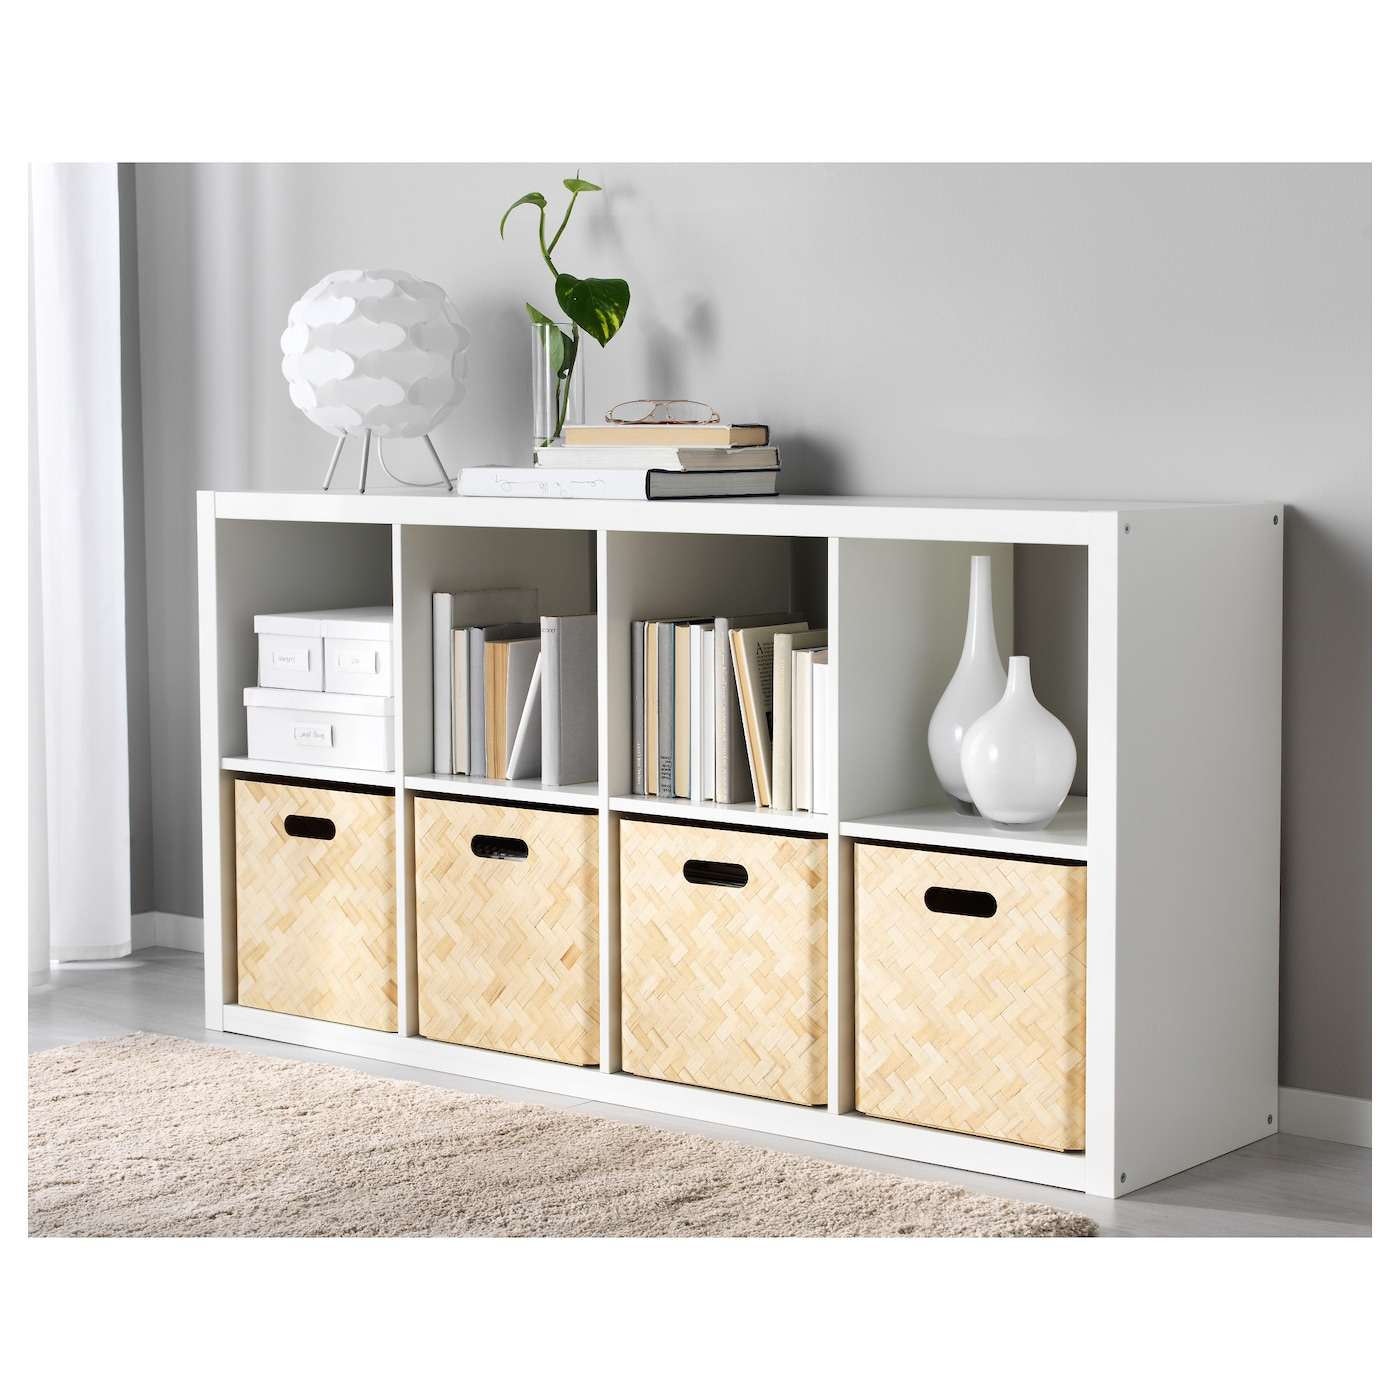 bullig box bamboo 32x35x33 cm ikea. Black Bedroom Furniture Sets. Home Design Ideas